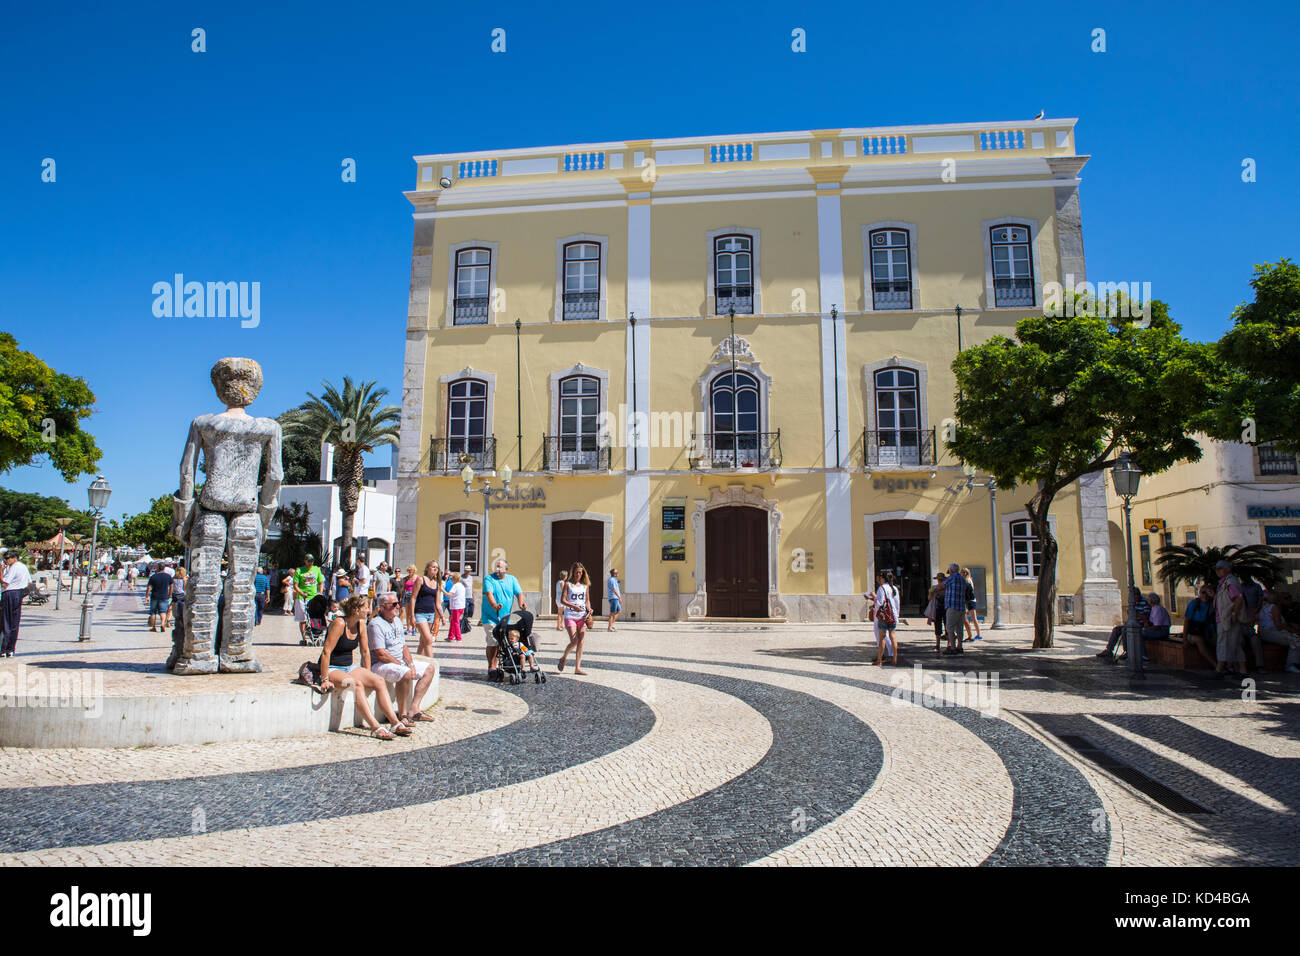 Square old town lagos stock photos square old town lagos stock images alamy - Tourist office lagos portugal ...